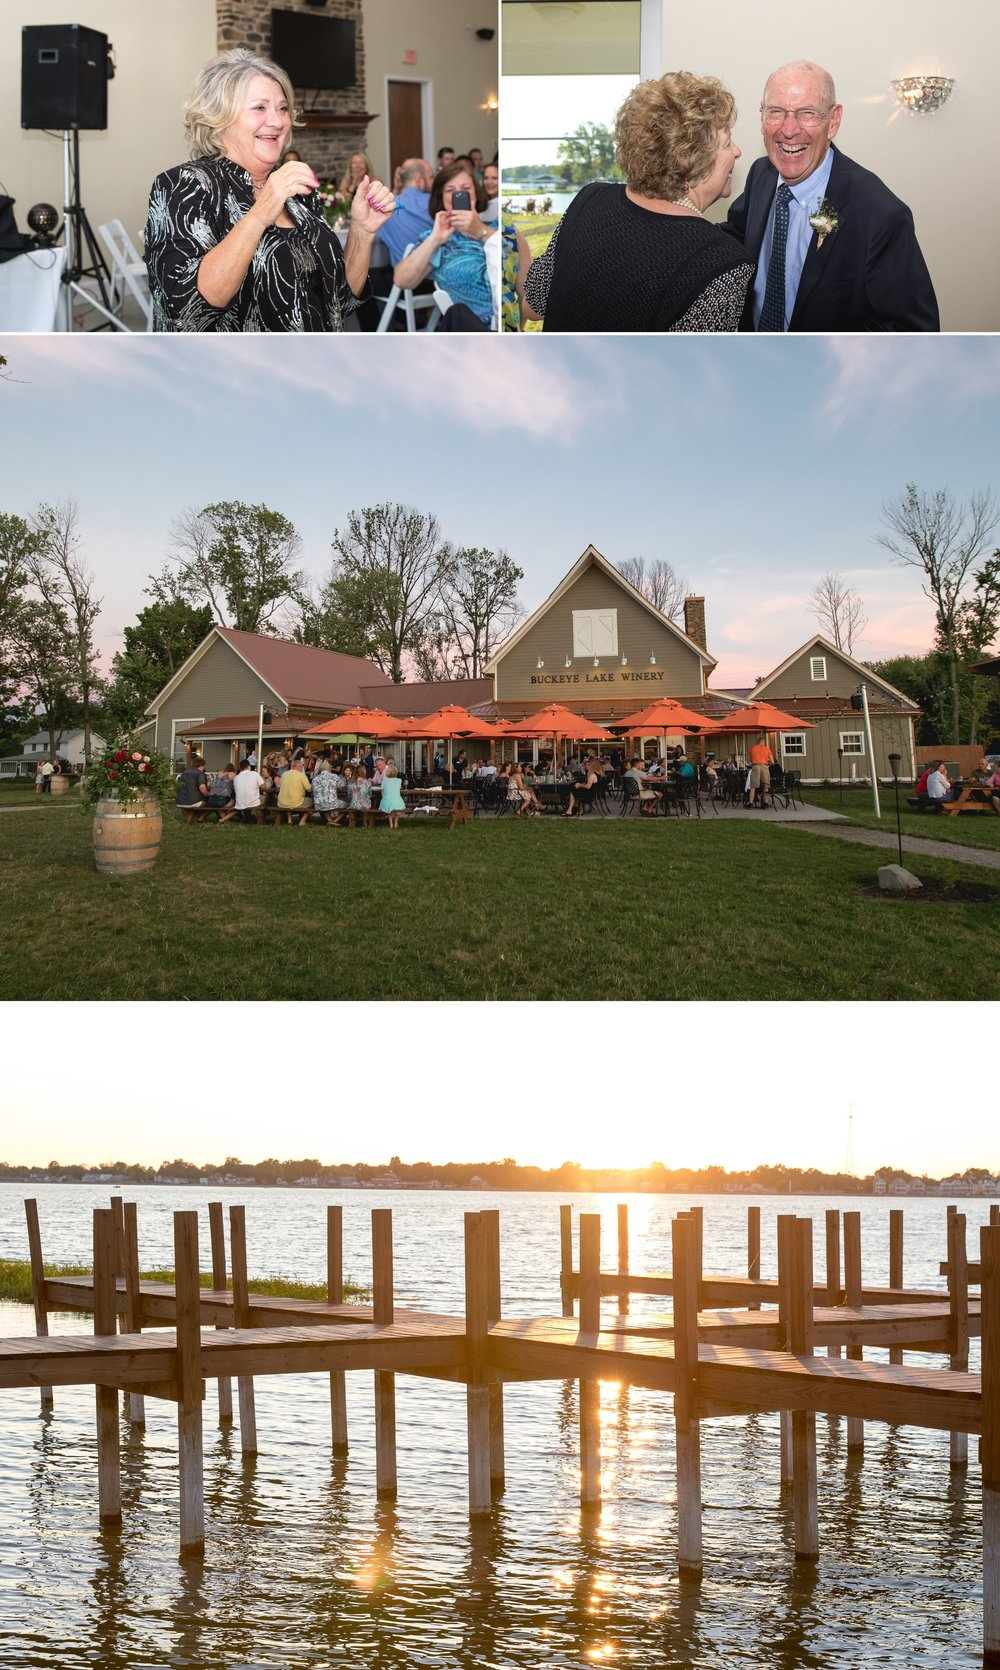 019-Buckeye-lake-winery-wedding-venue-columbus-ohio-wedding-muschlitz-photography-reception-04.JPG